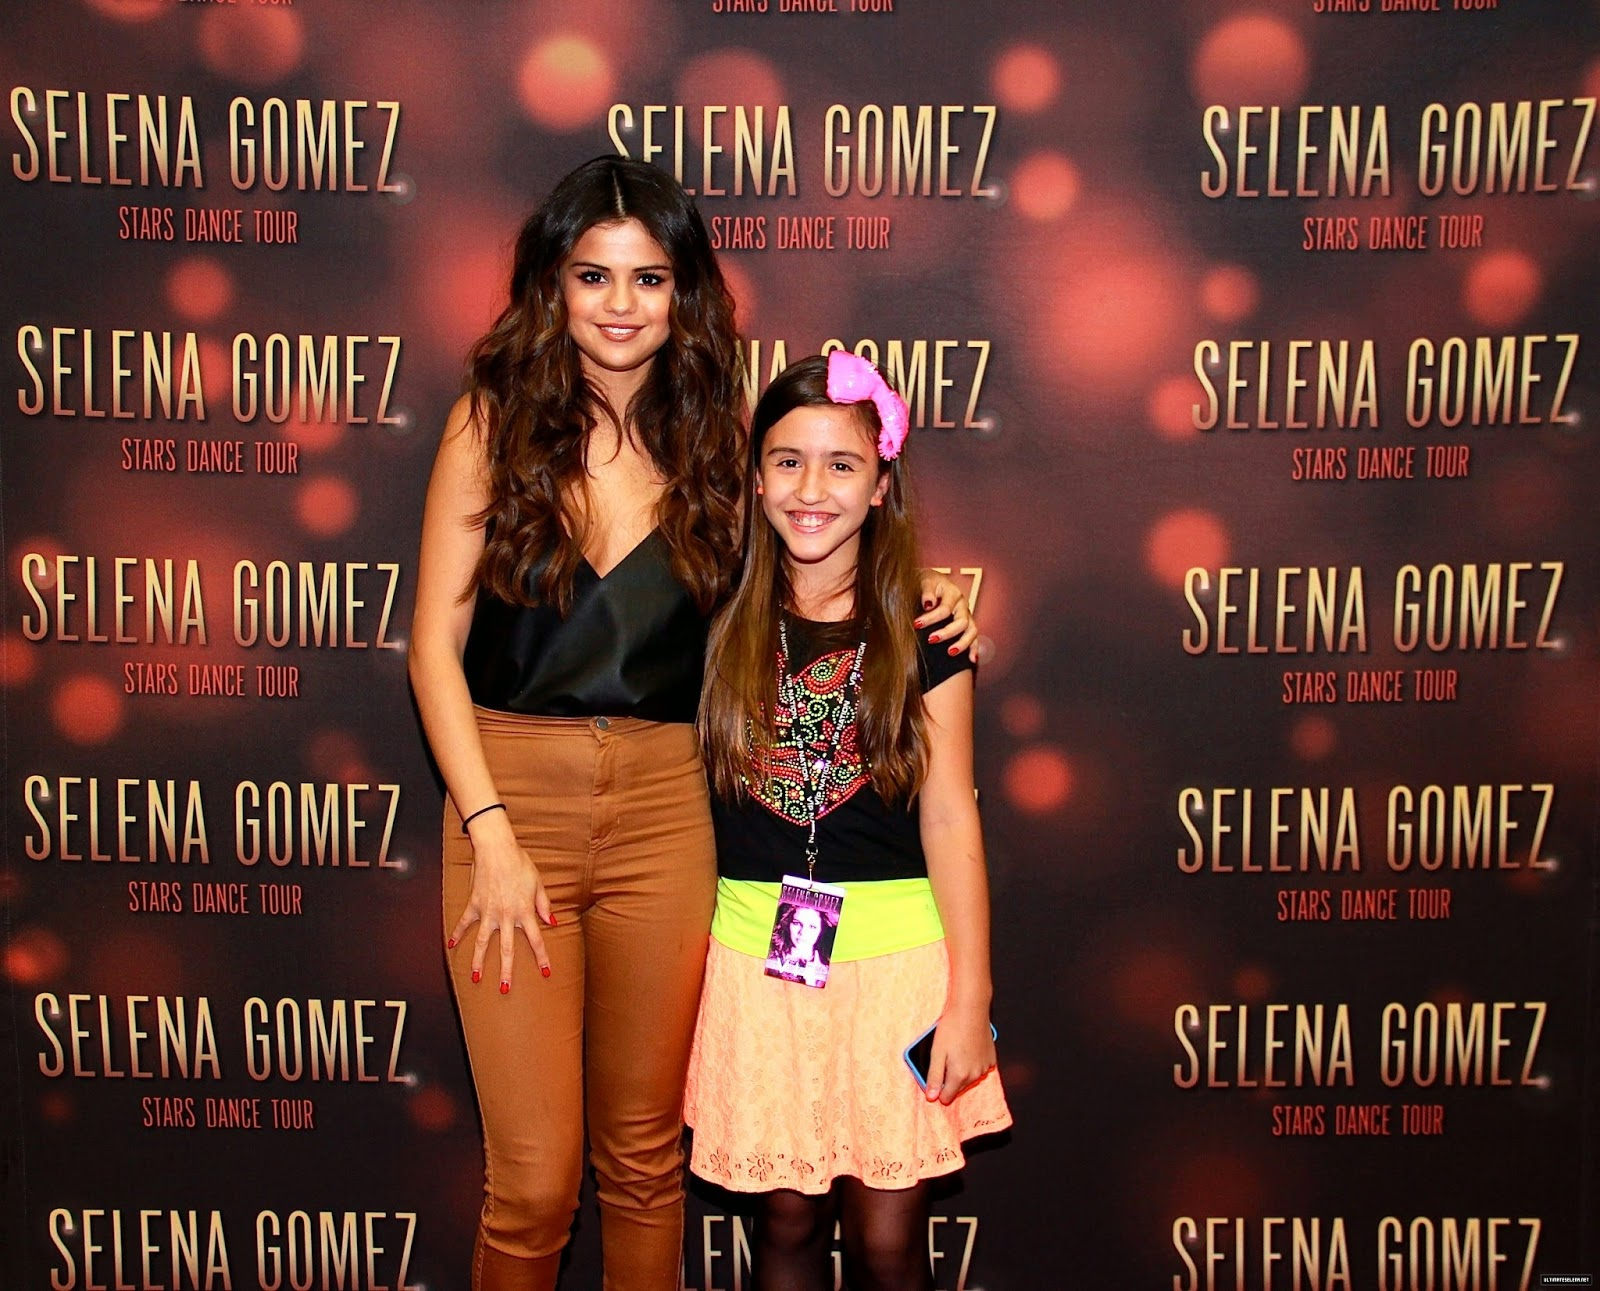 Selena gomez style stars dance world tour meet greet bordefest in stars dance world tour meet greet bordefest in hidalgo texas mar 8 2014 m4hsunfo